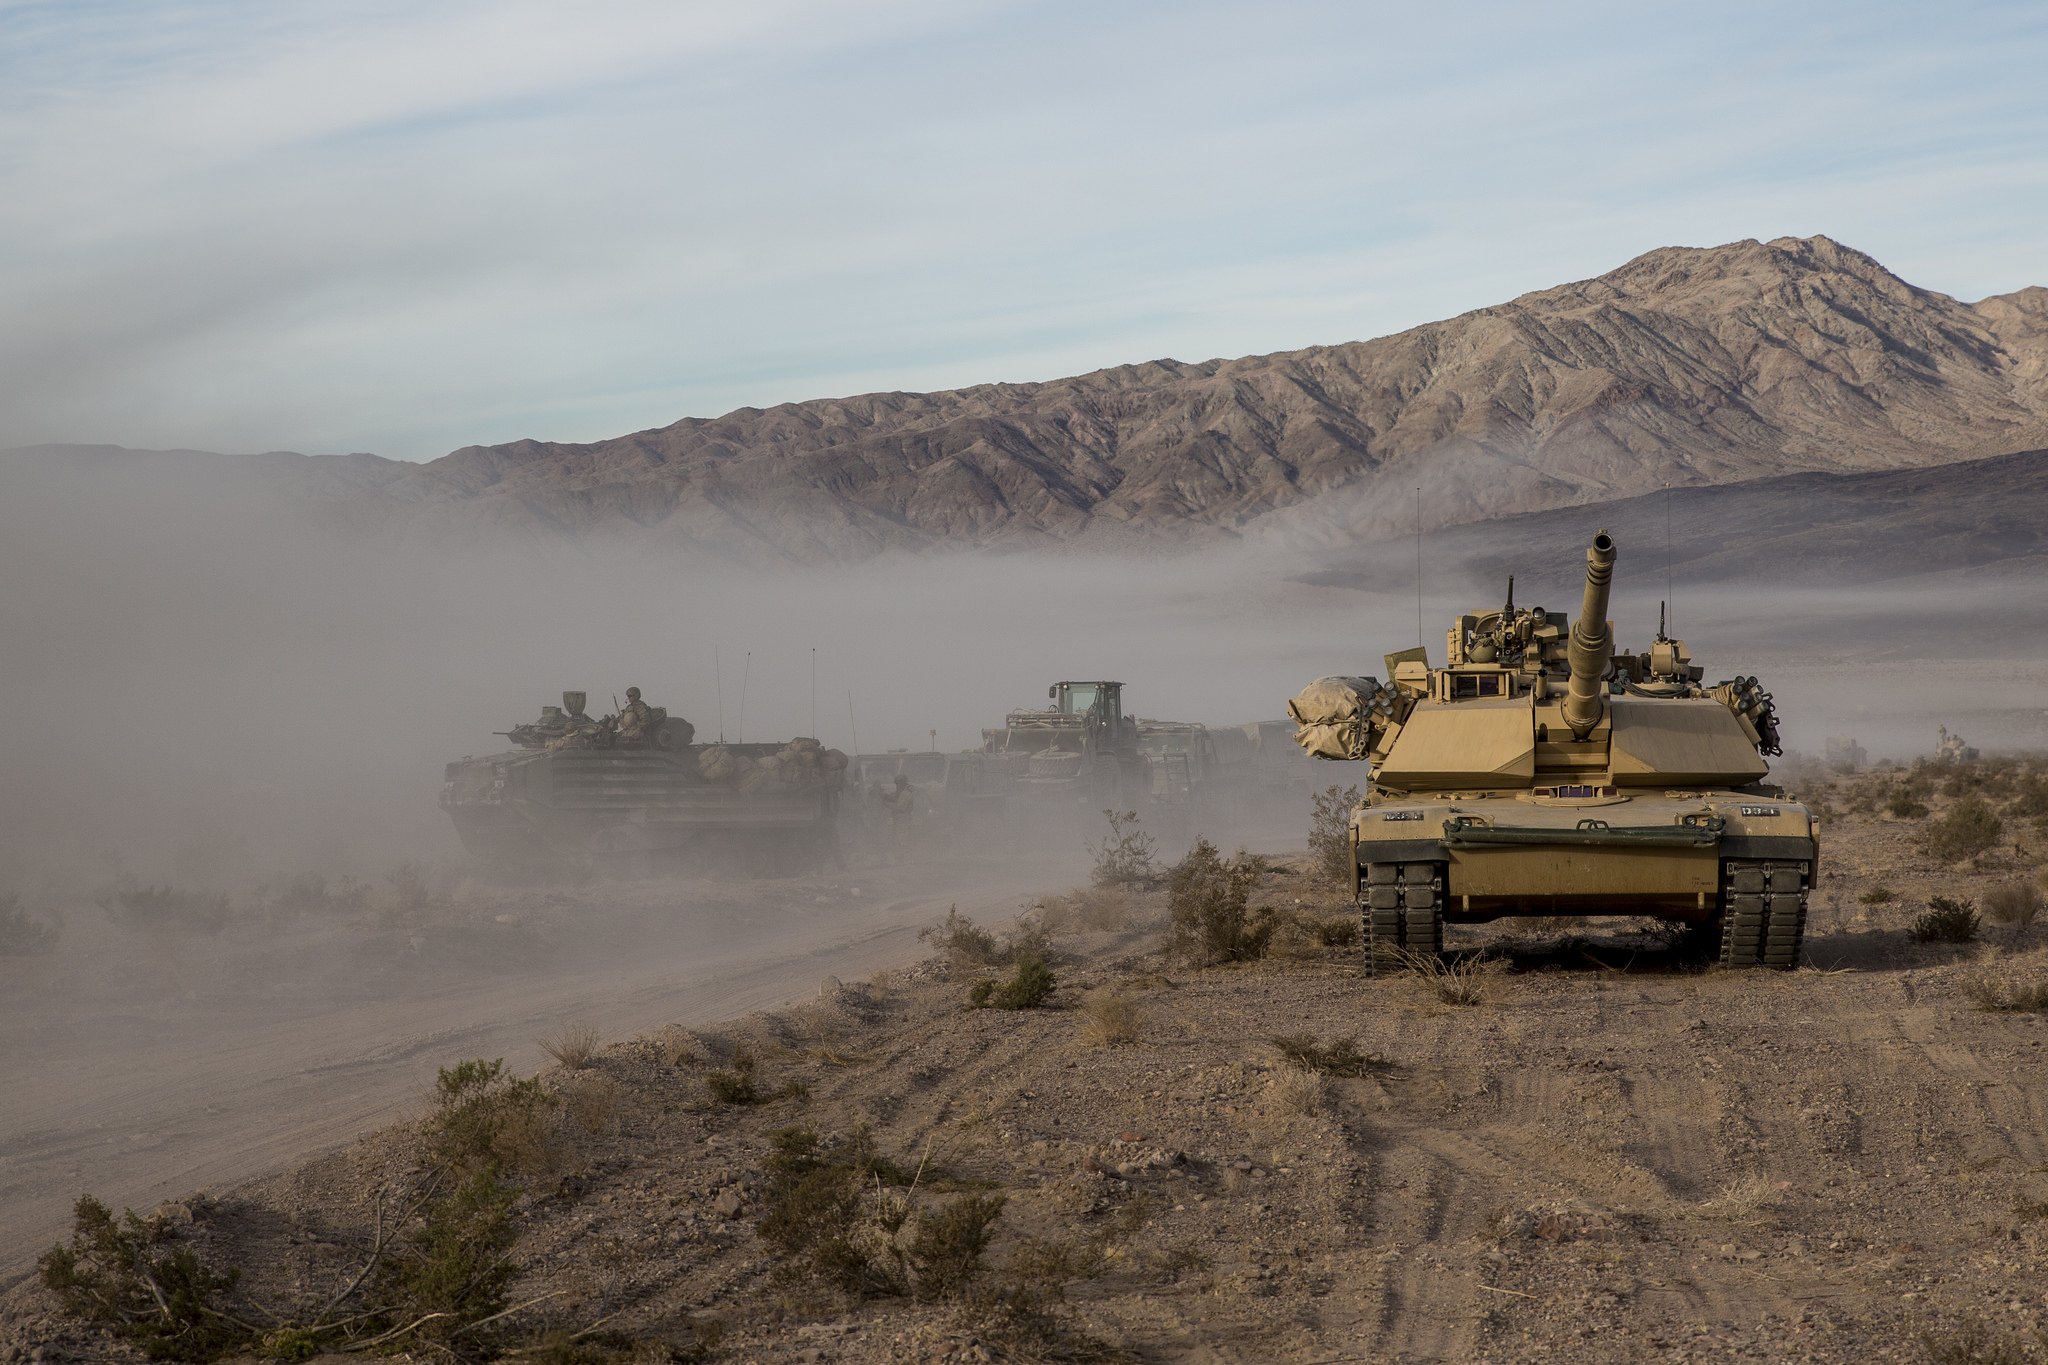 Marines with 3rd Battalion, 4th Marine Regiment, 1st Marine Division utilize an M1A1 Abrams tank during exercise Steel Knight (SK) 18 at Marine Corps Air Ground Combat Center Twentynine Palms, Calif. (Marine Corps)